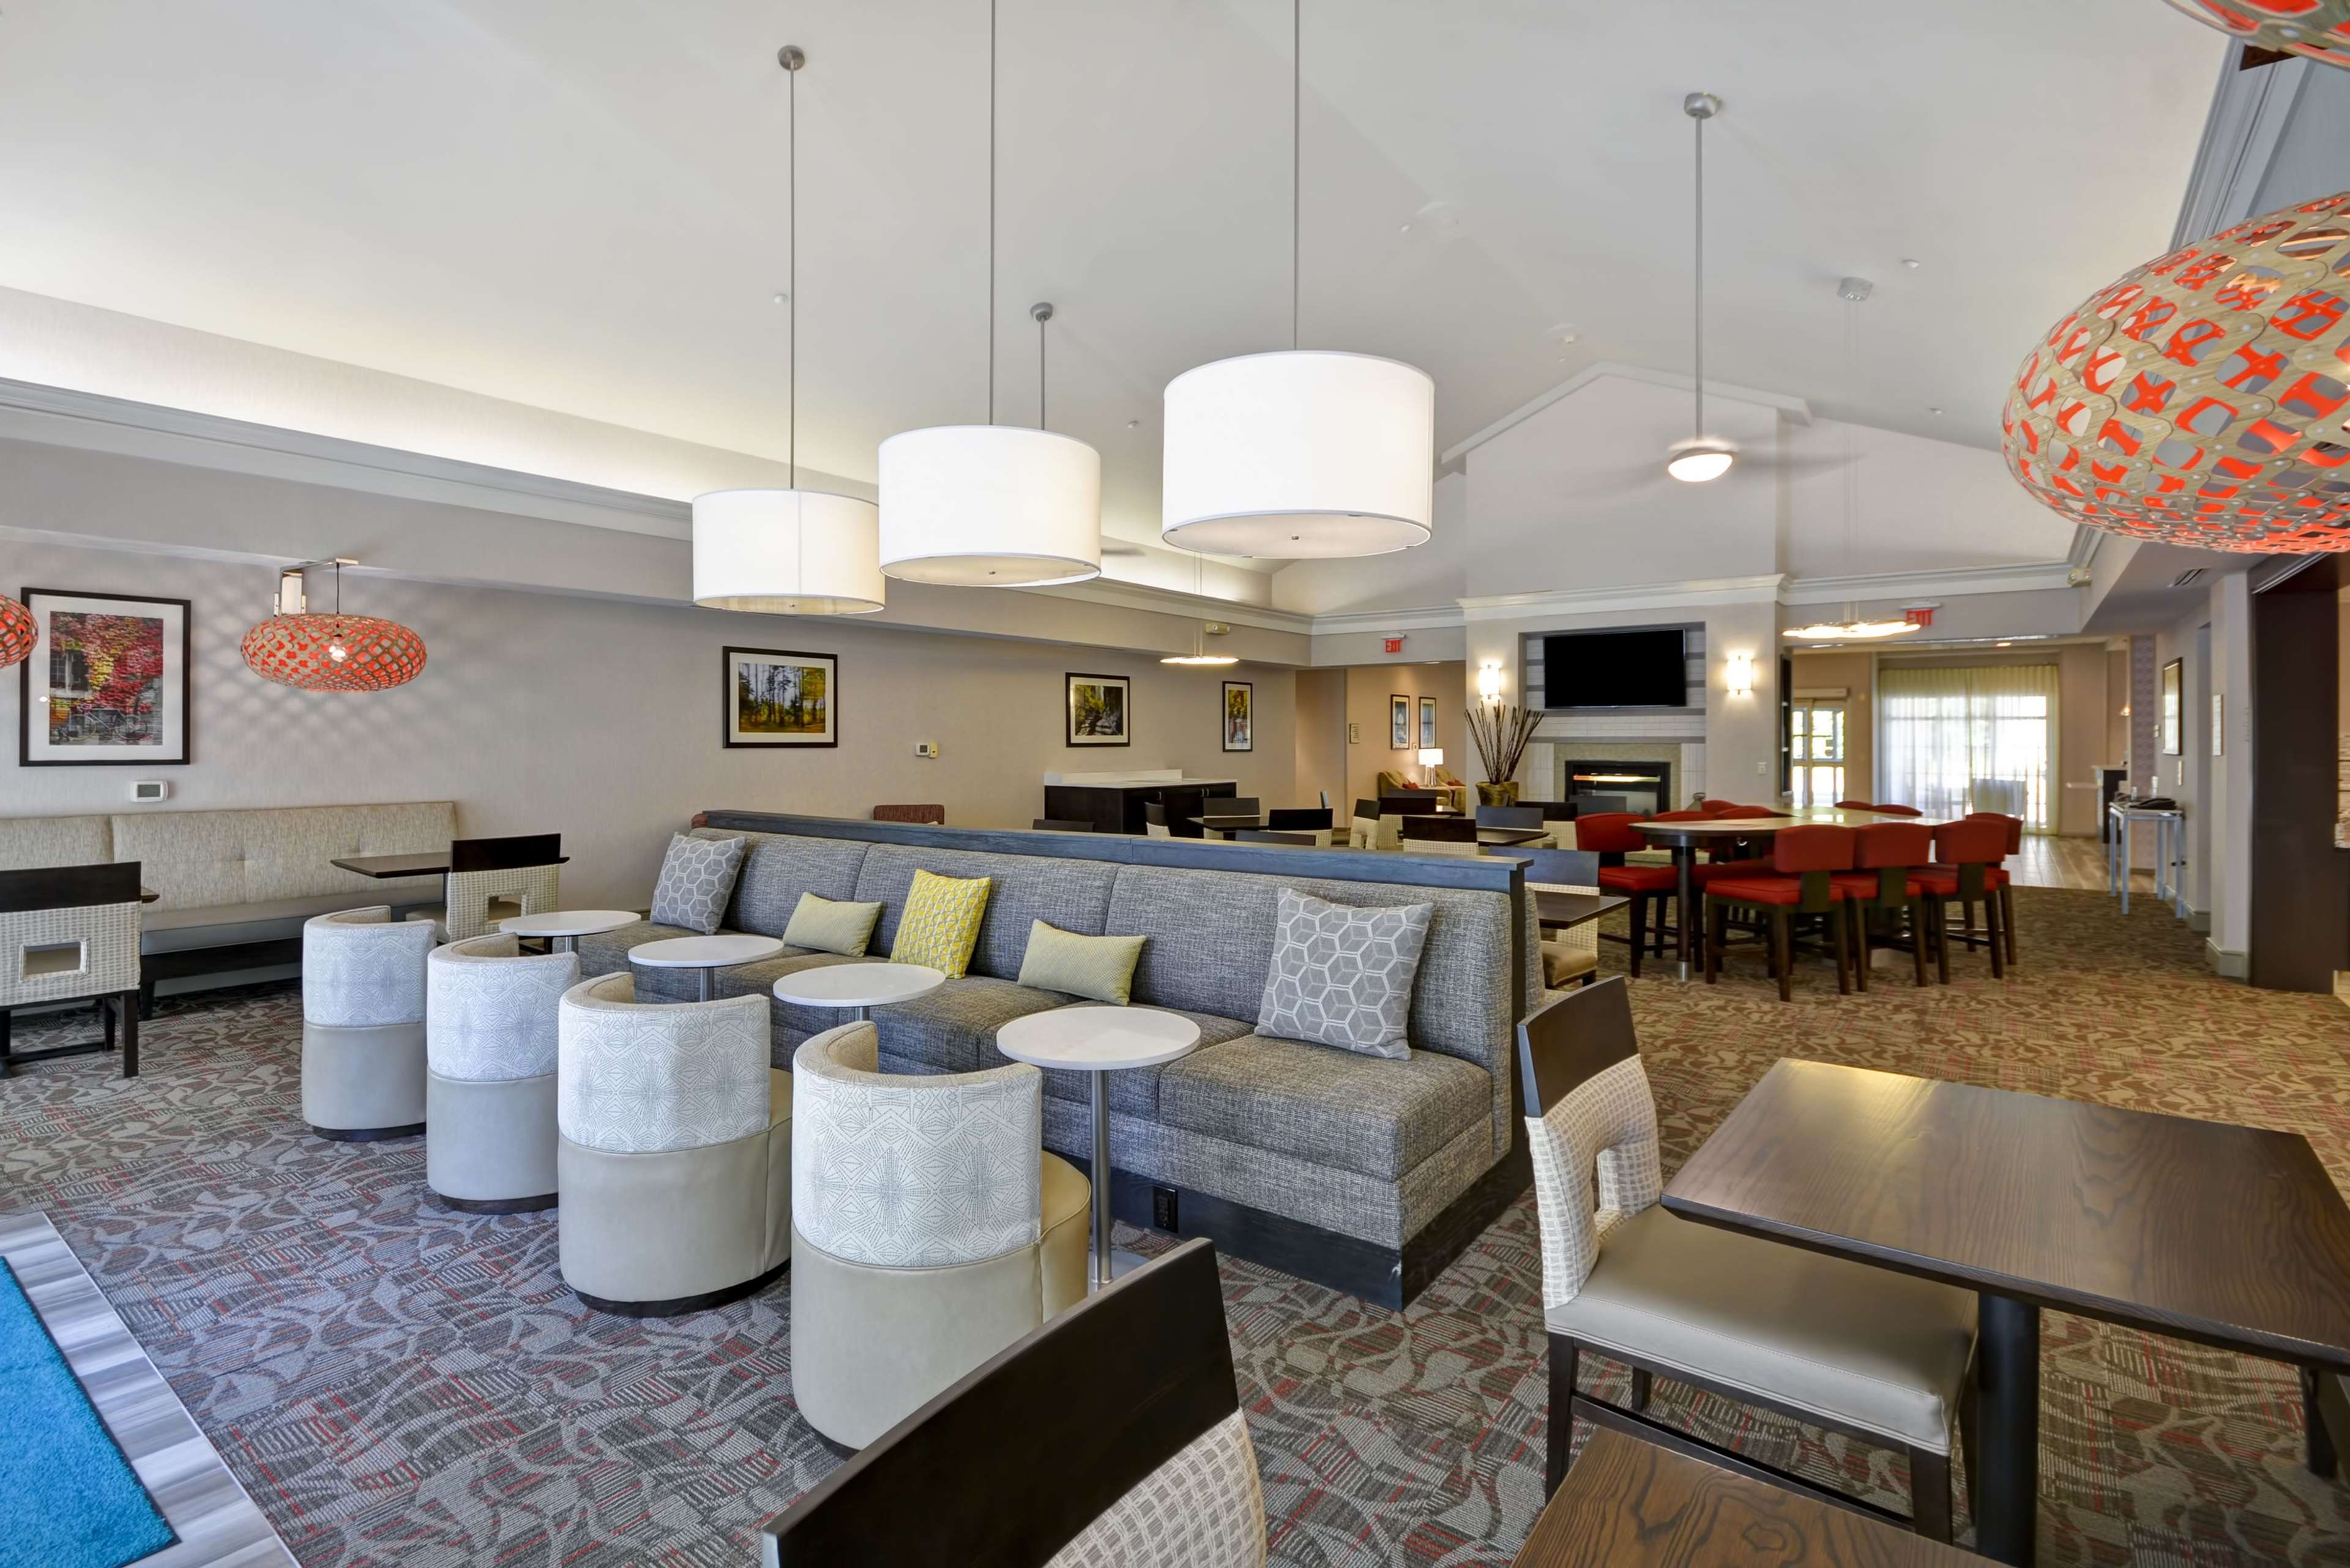 Homewood Suites by Hilton Ithaca image 5